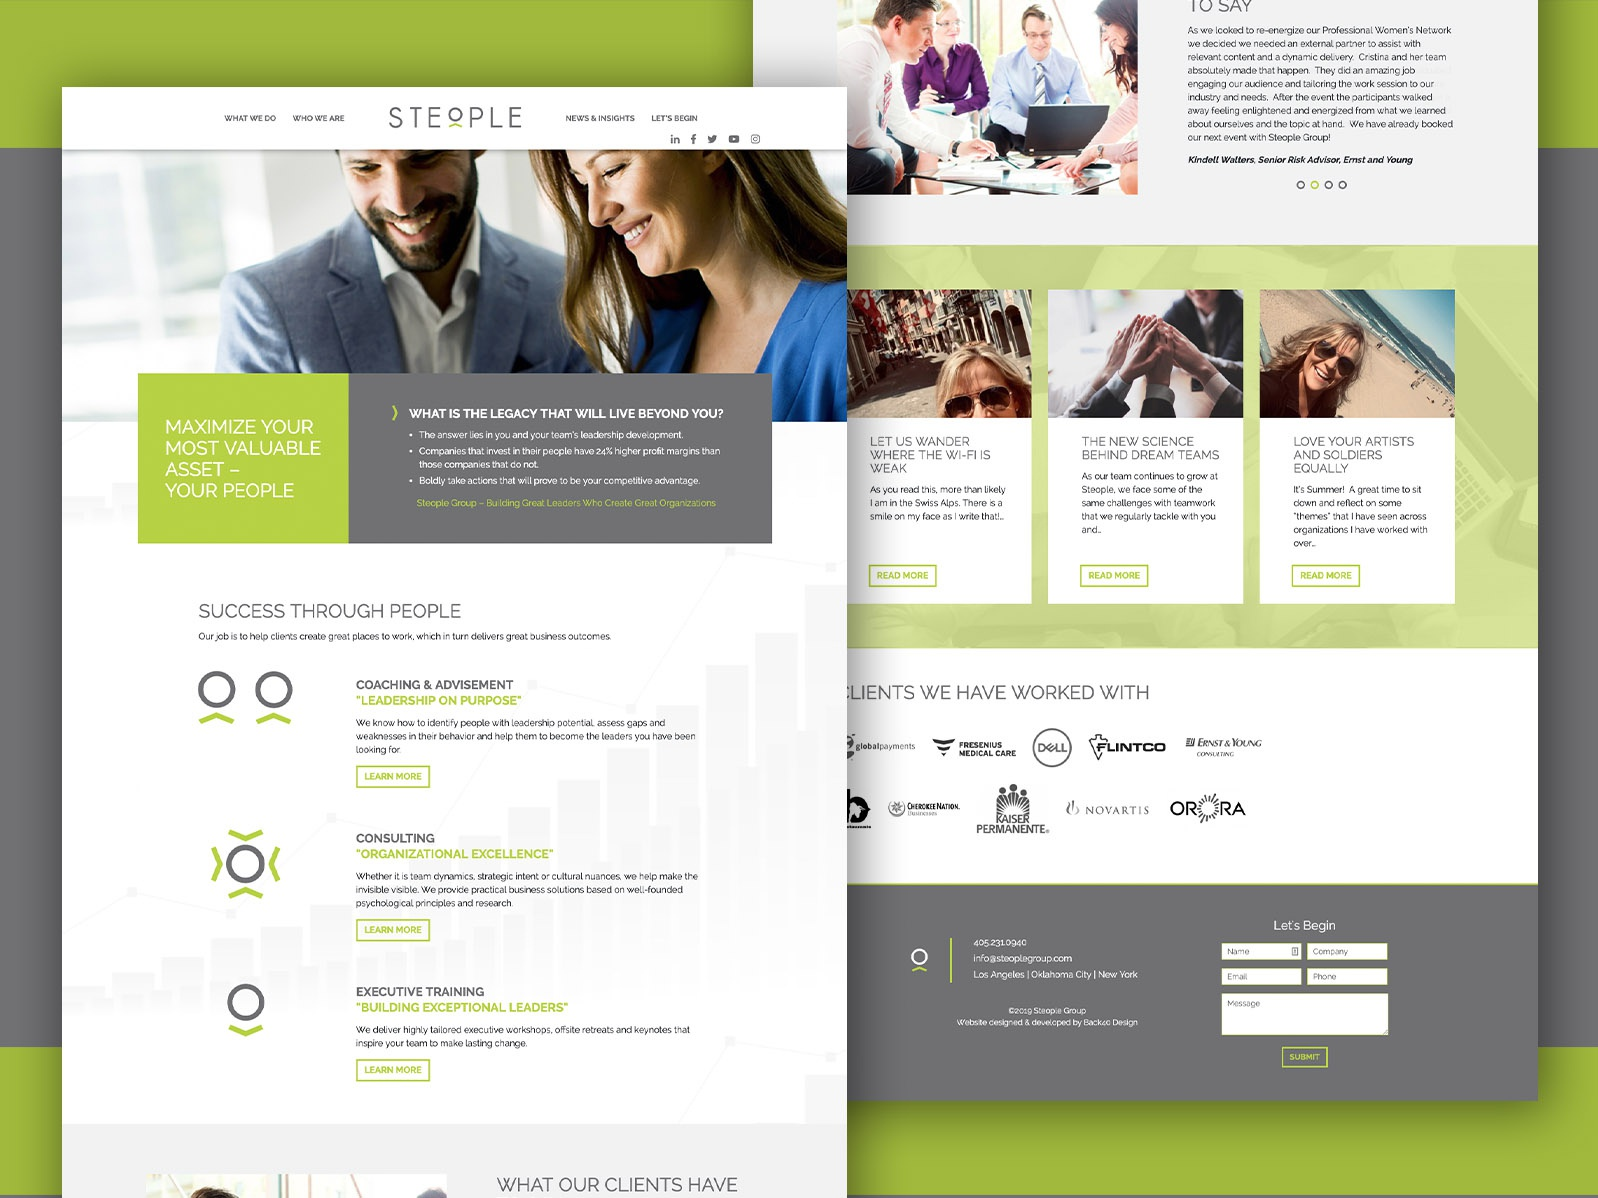 Steople - Web Design by Adrian Townsend on Dribbble